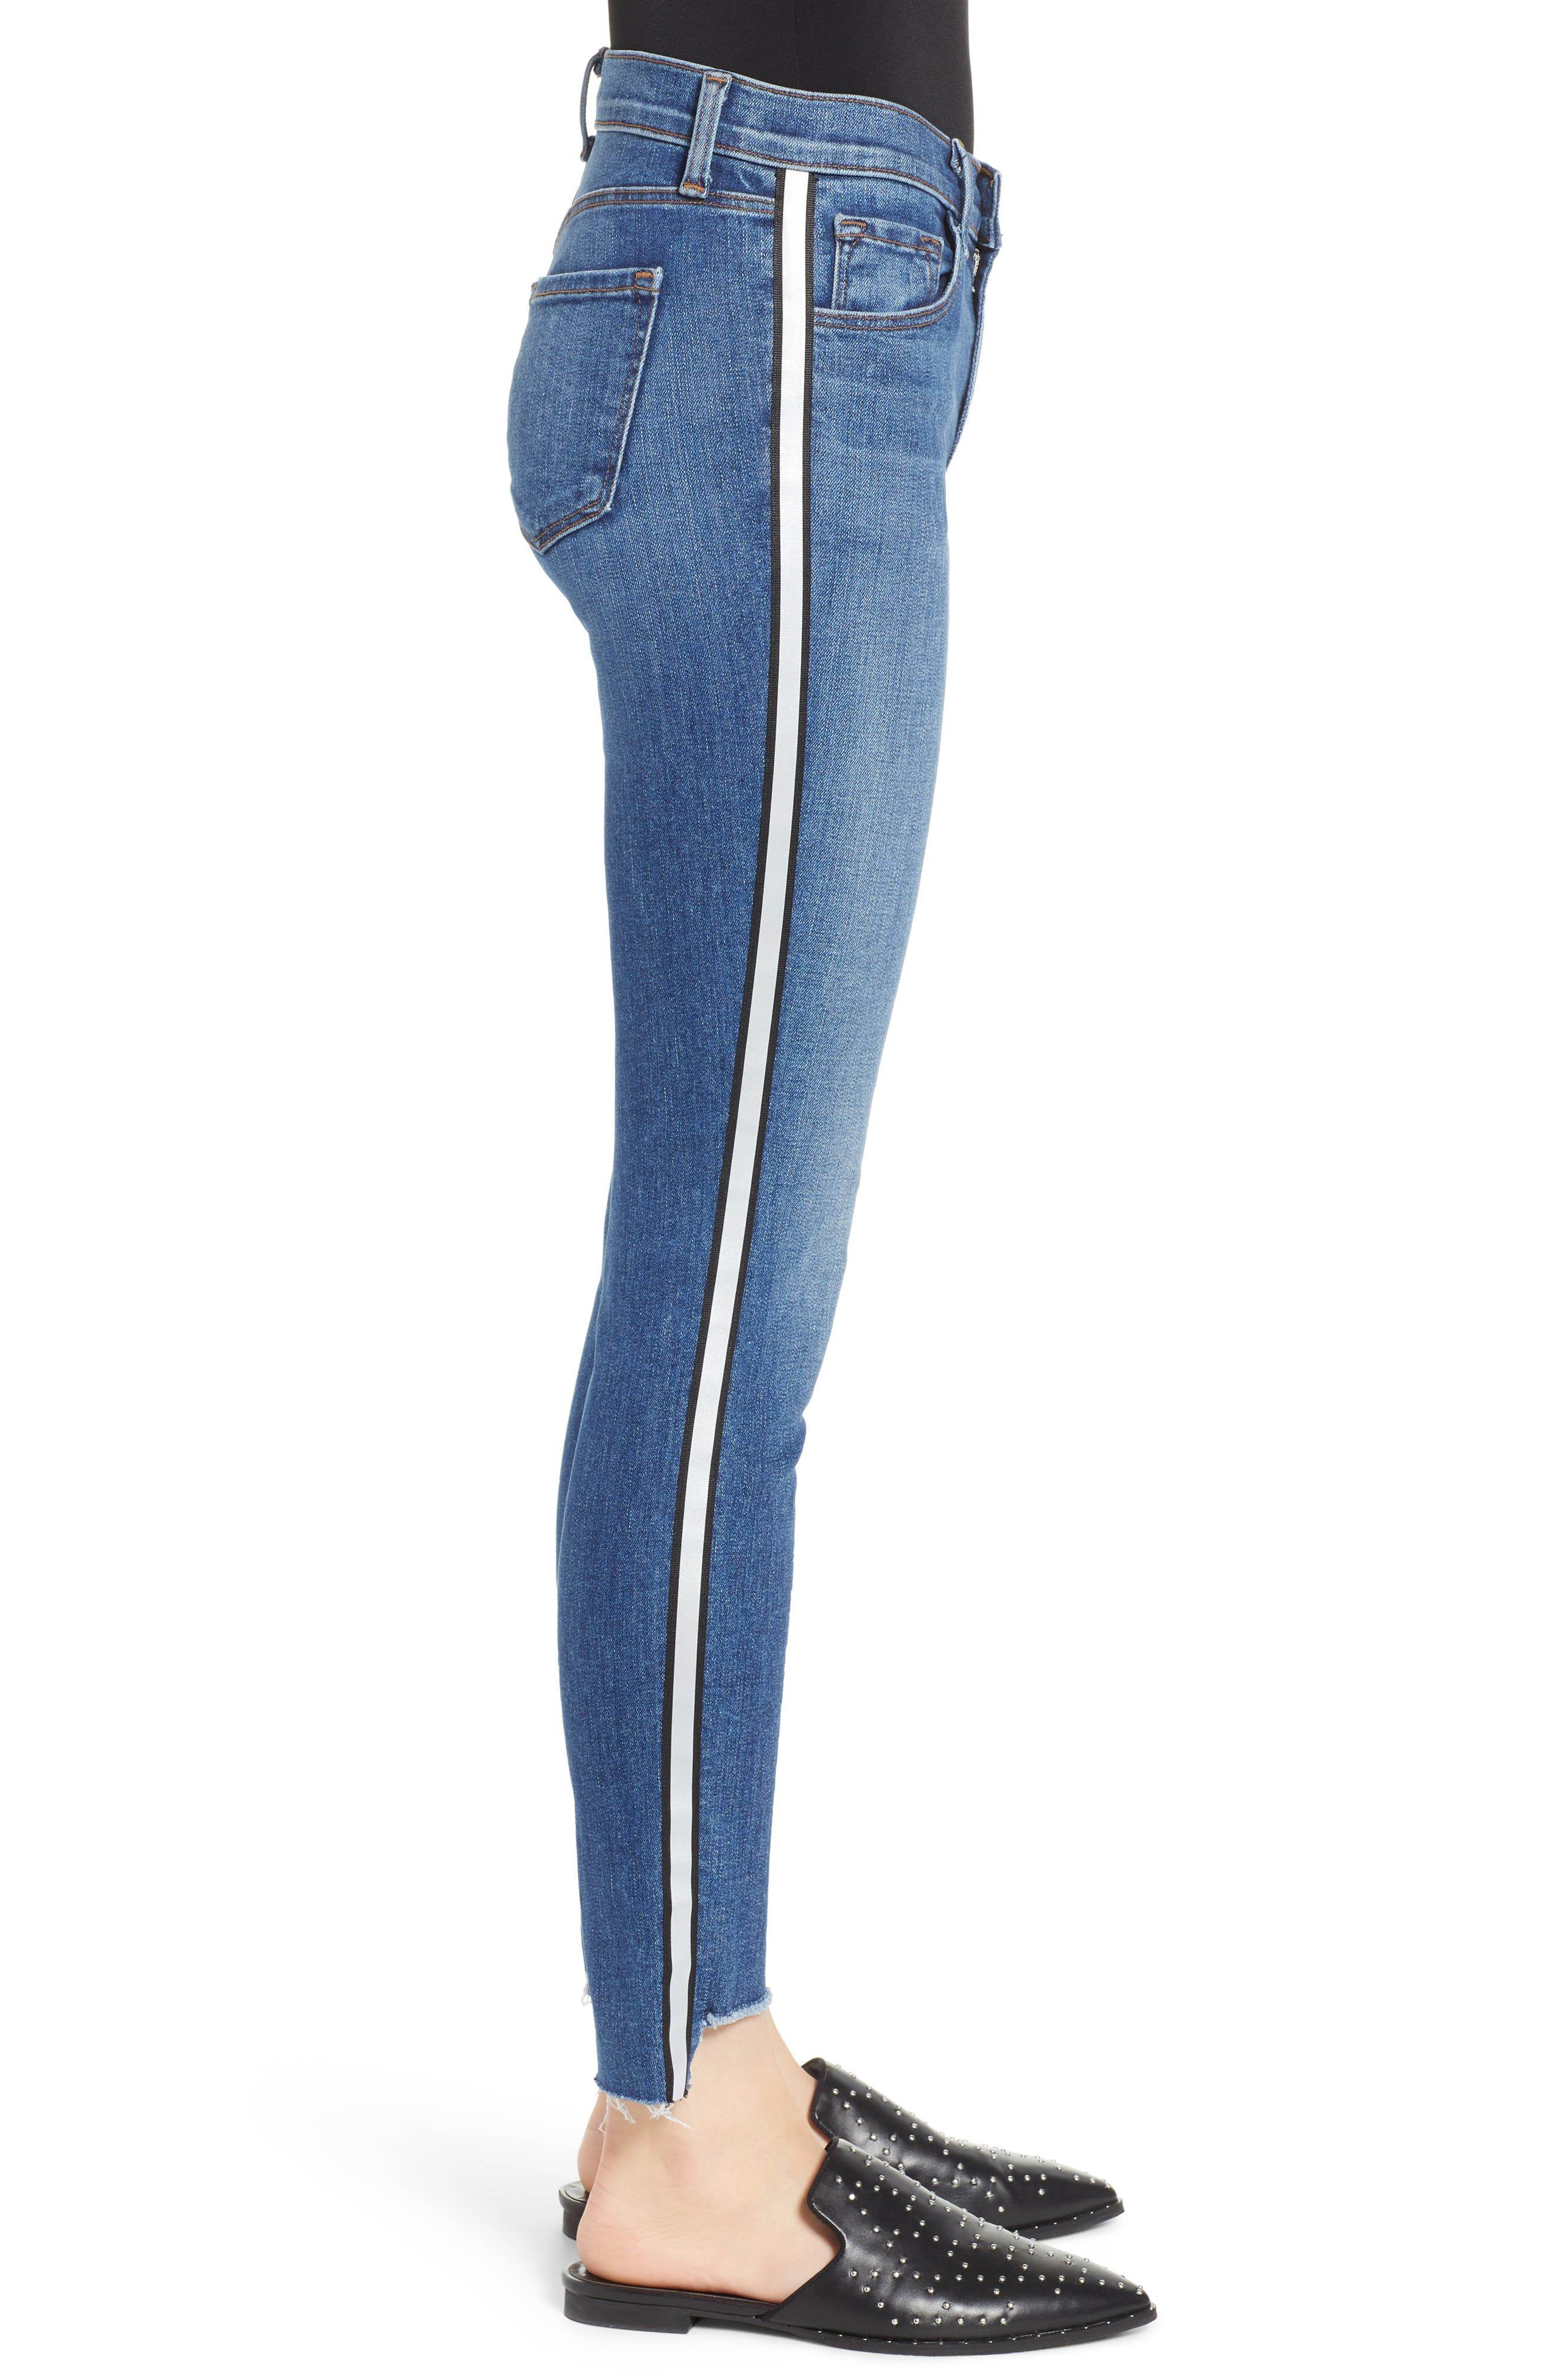 811 Skinny Jeans,                             Alternate thumbnail 3, color,                             REFLECTING